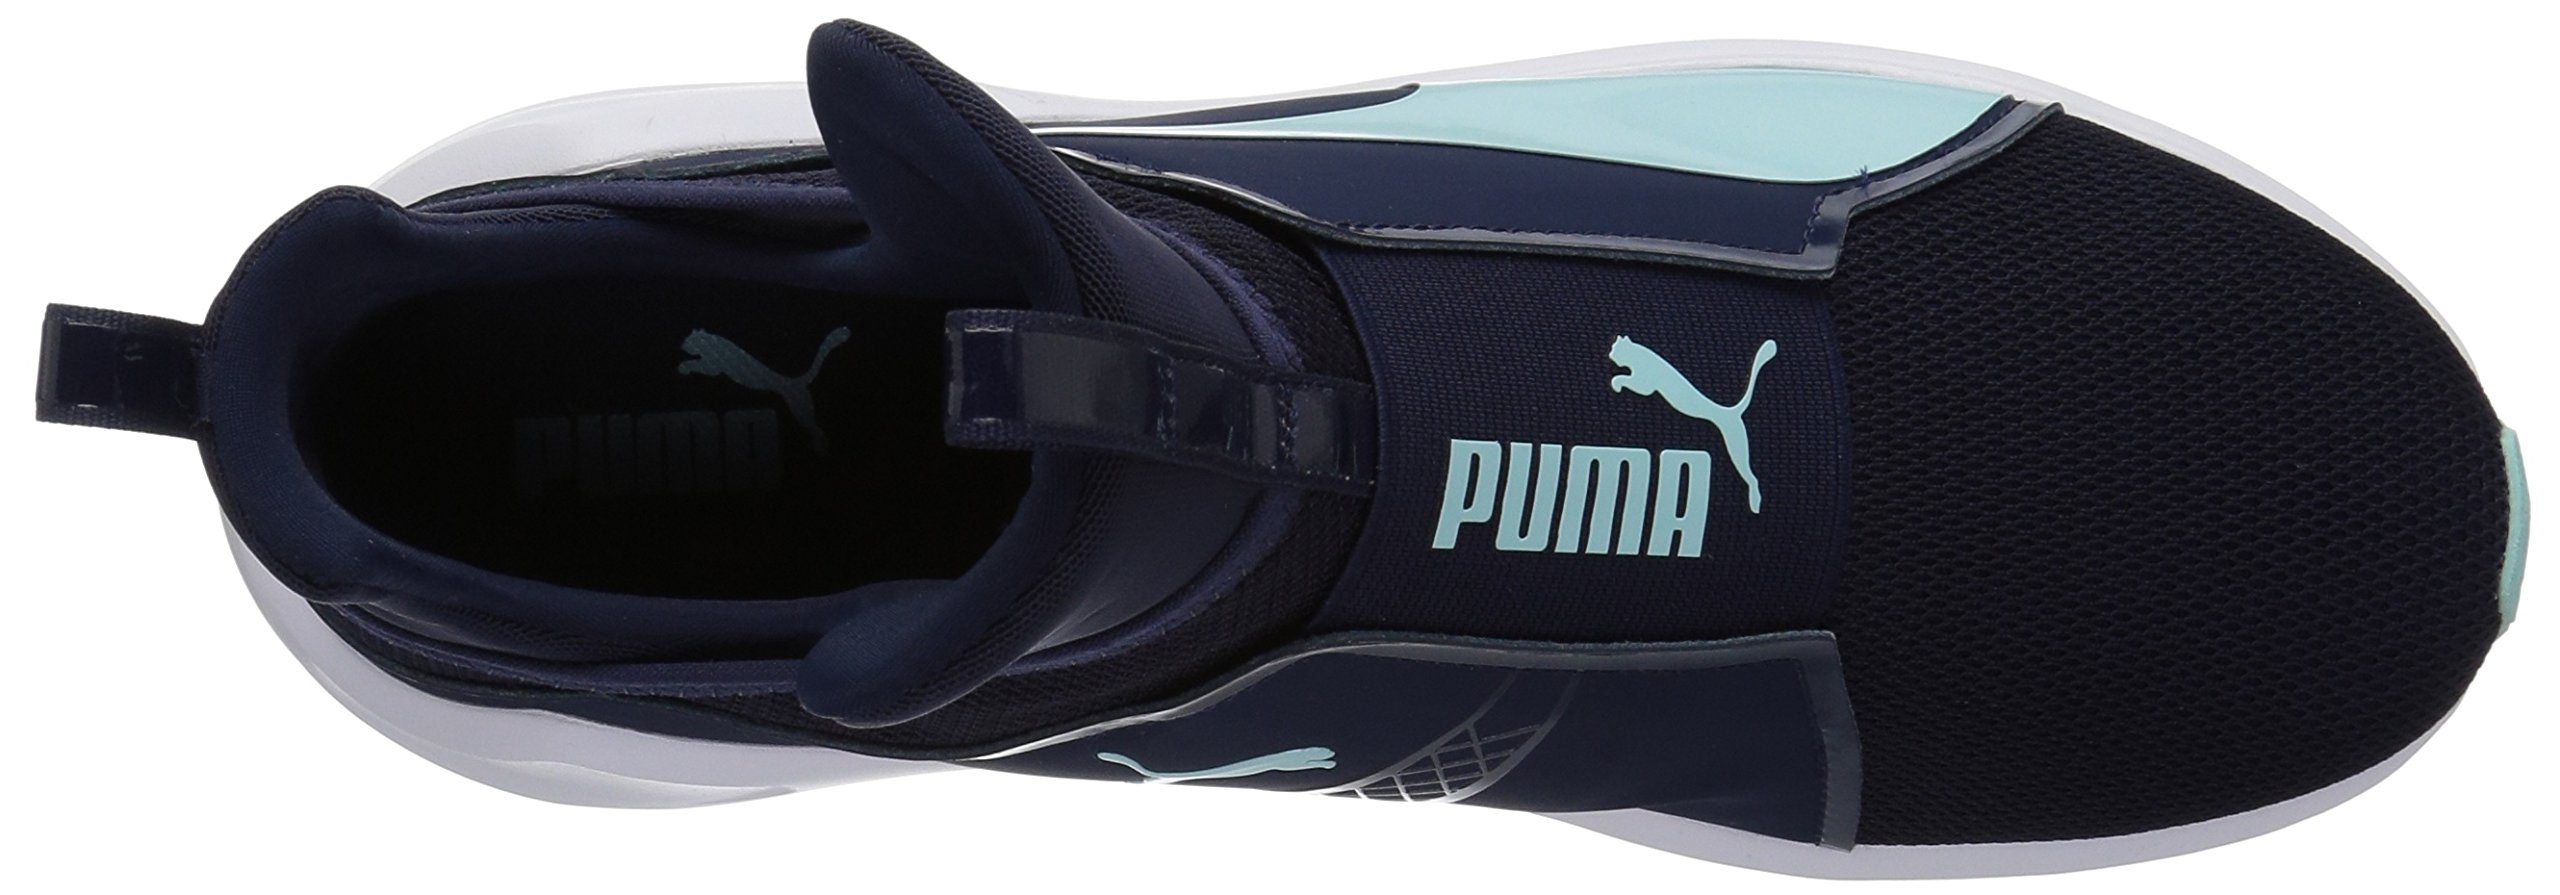 PUMA Women's Fierce Core Sneaker, Peacoat-Island Paradise, 9 M US by PUMA (Image #8)